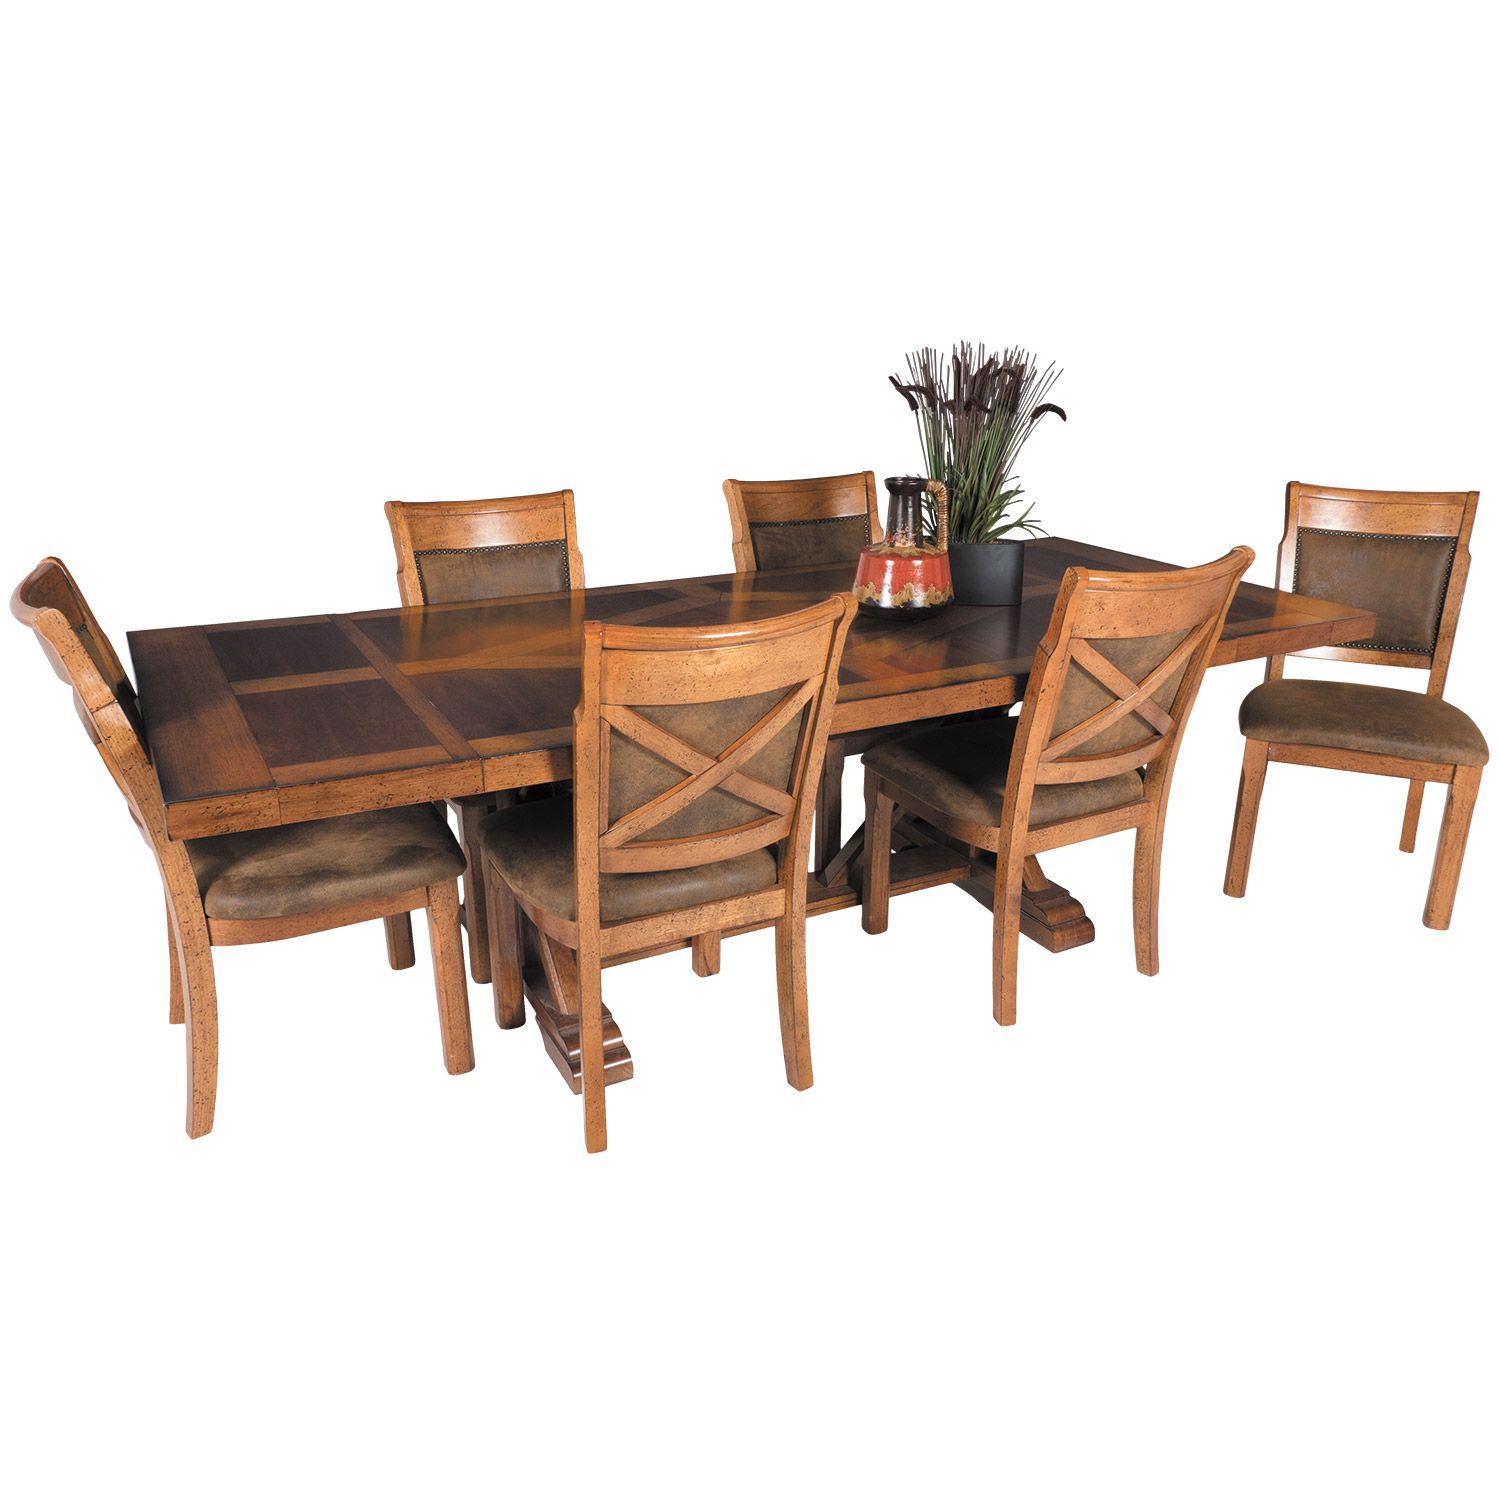 Picture Of Vintage Refectory Dining Table